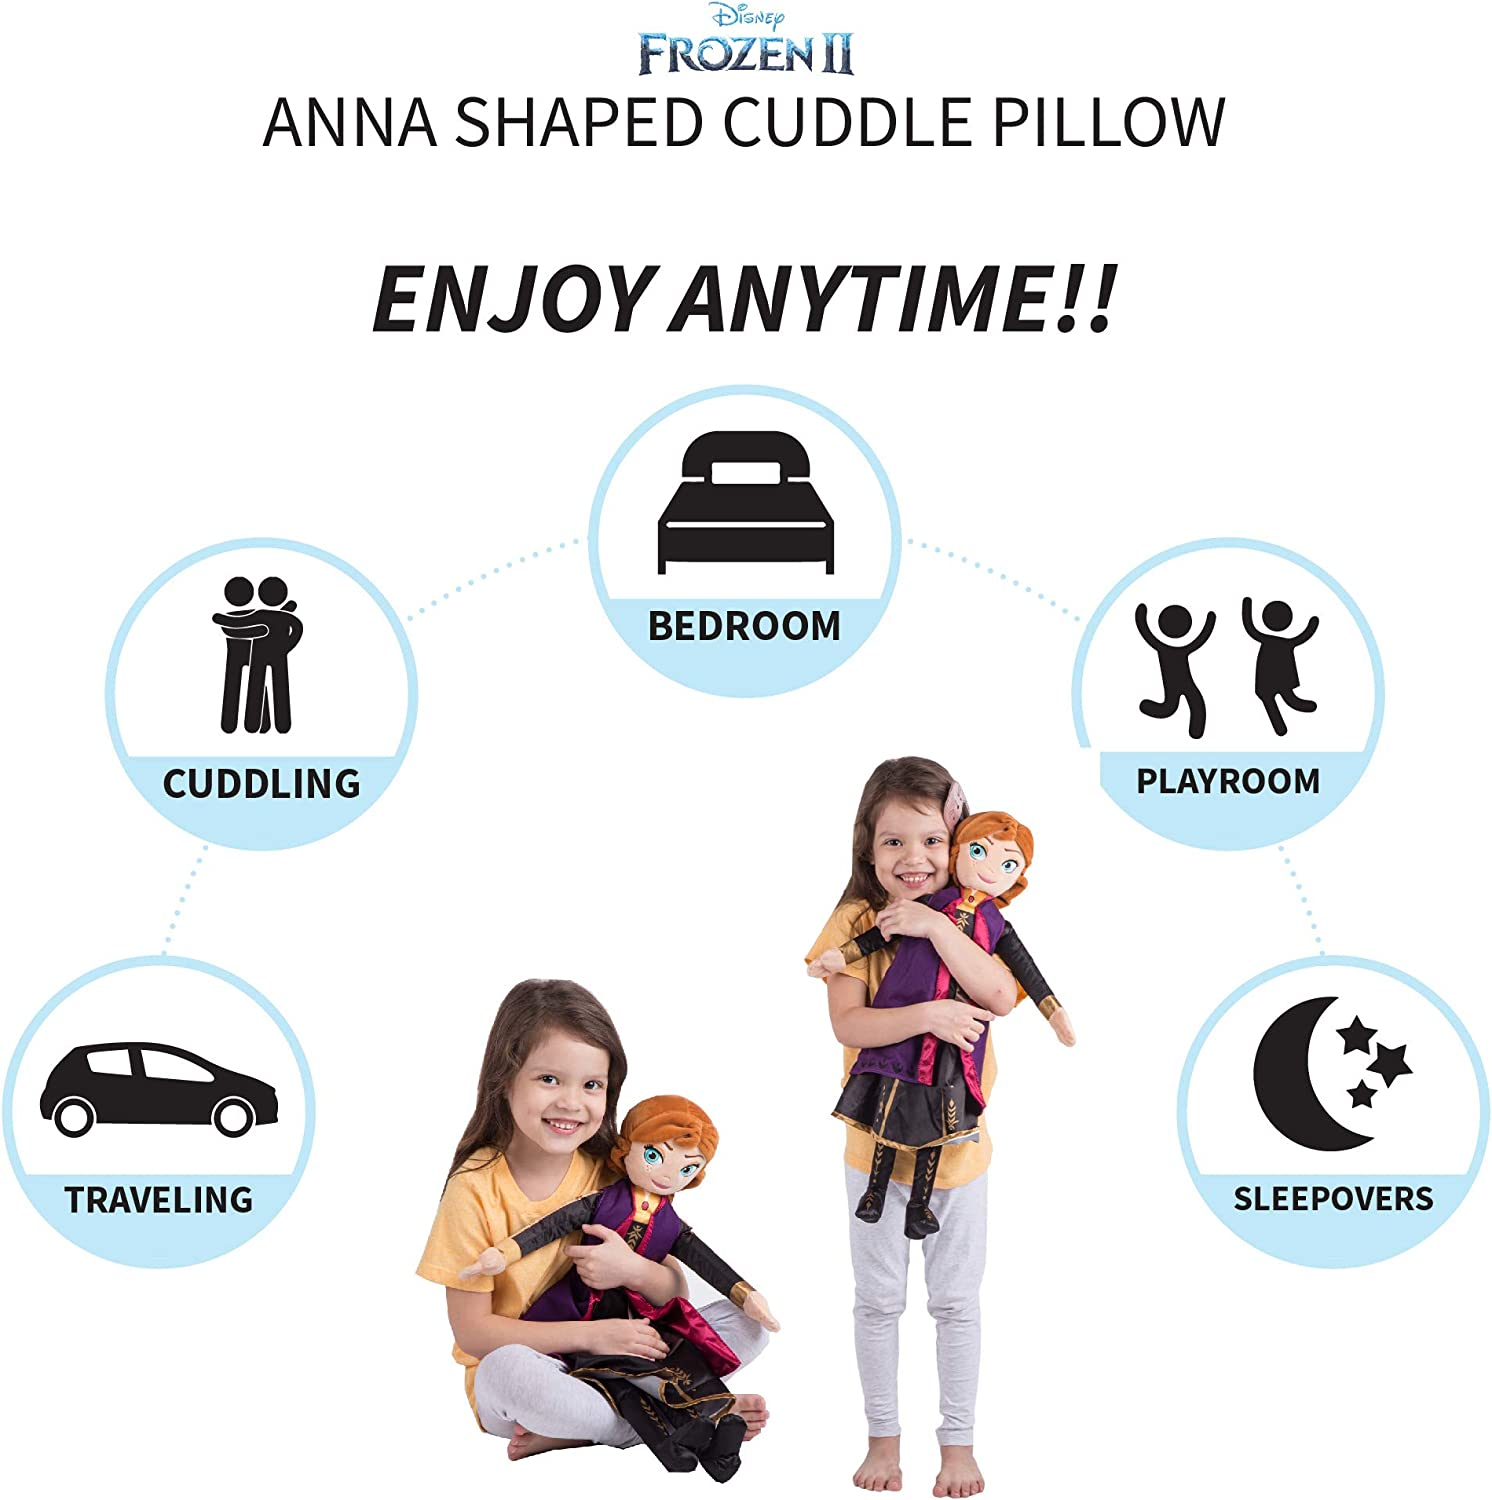 Franco Kids Bedding Super Soft Plush Cuddle Pillow Buddy, One Size, Disney Frozen 2 Anna